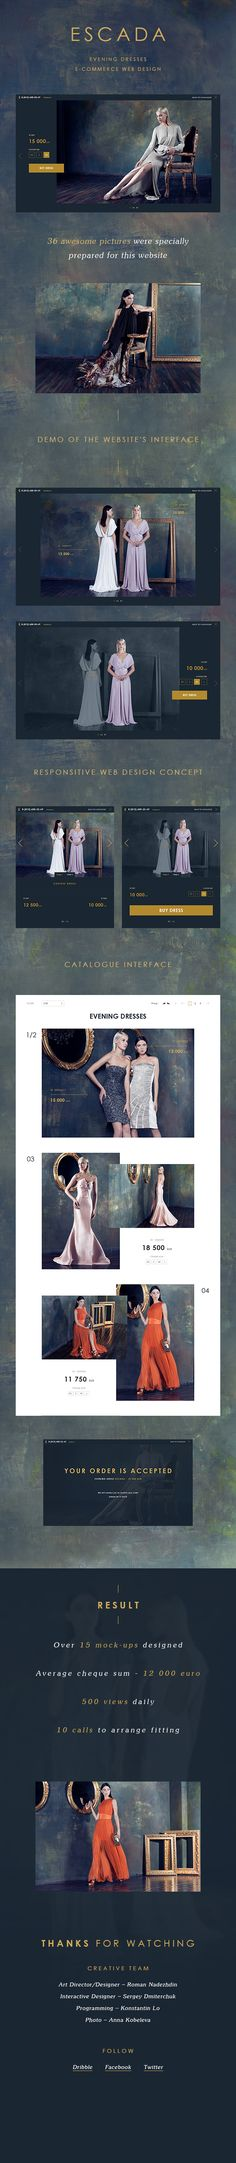 Escada evening dresses - eCommerce website on Behance